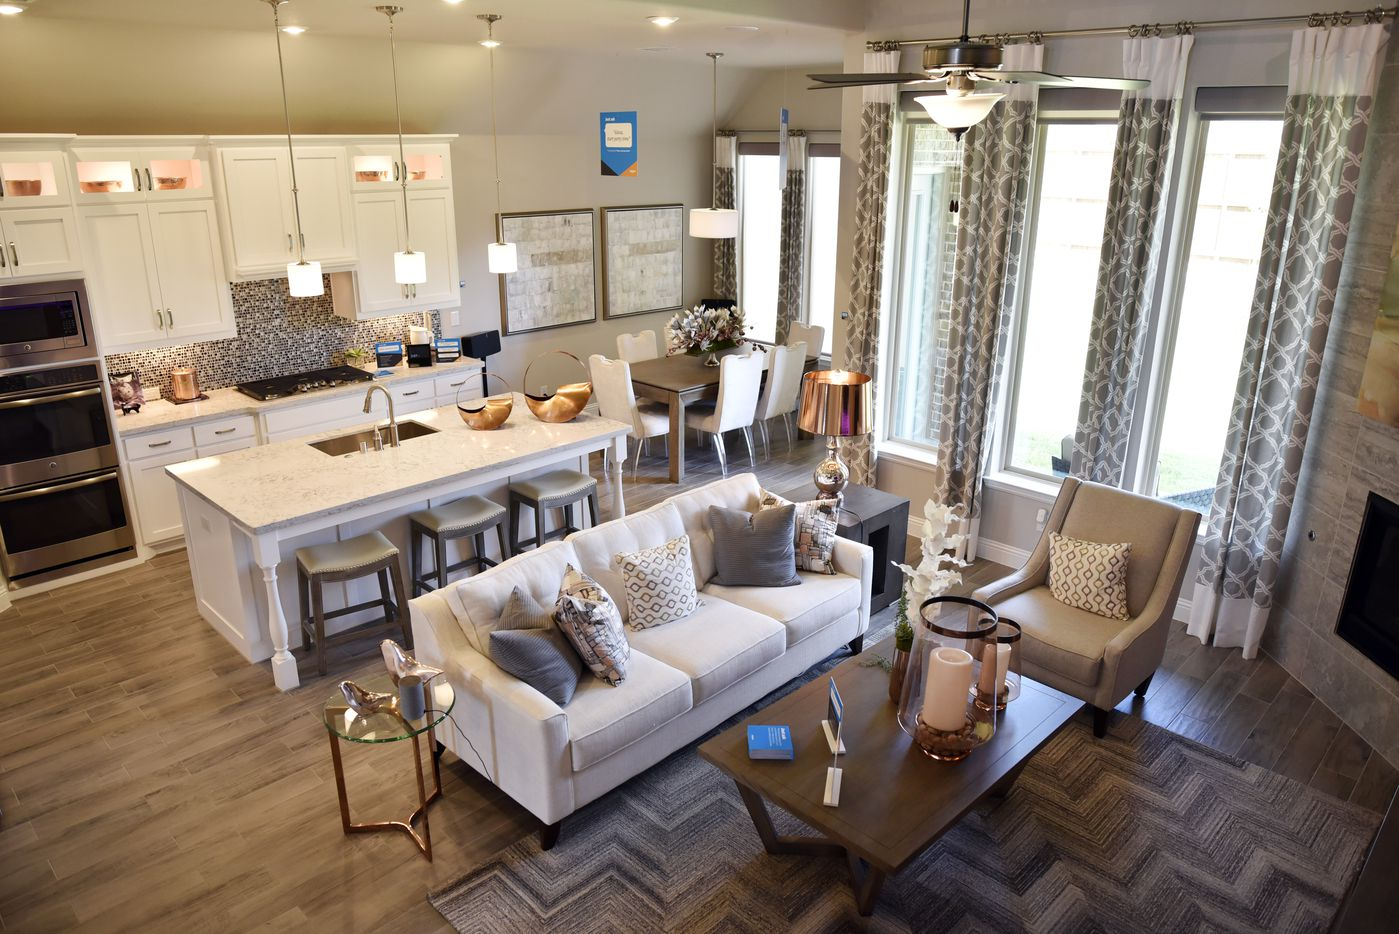 The living room and kitchen inside a Lennar Homes model house sits behind the separate living suite.